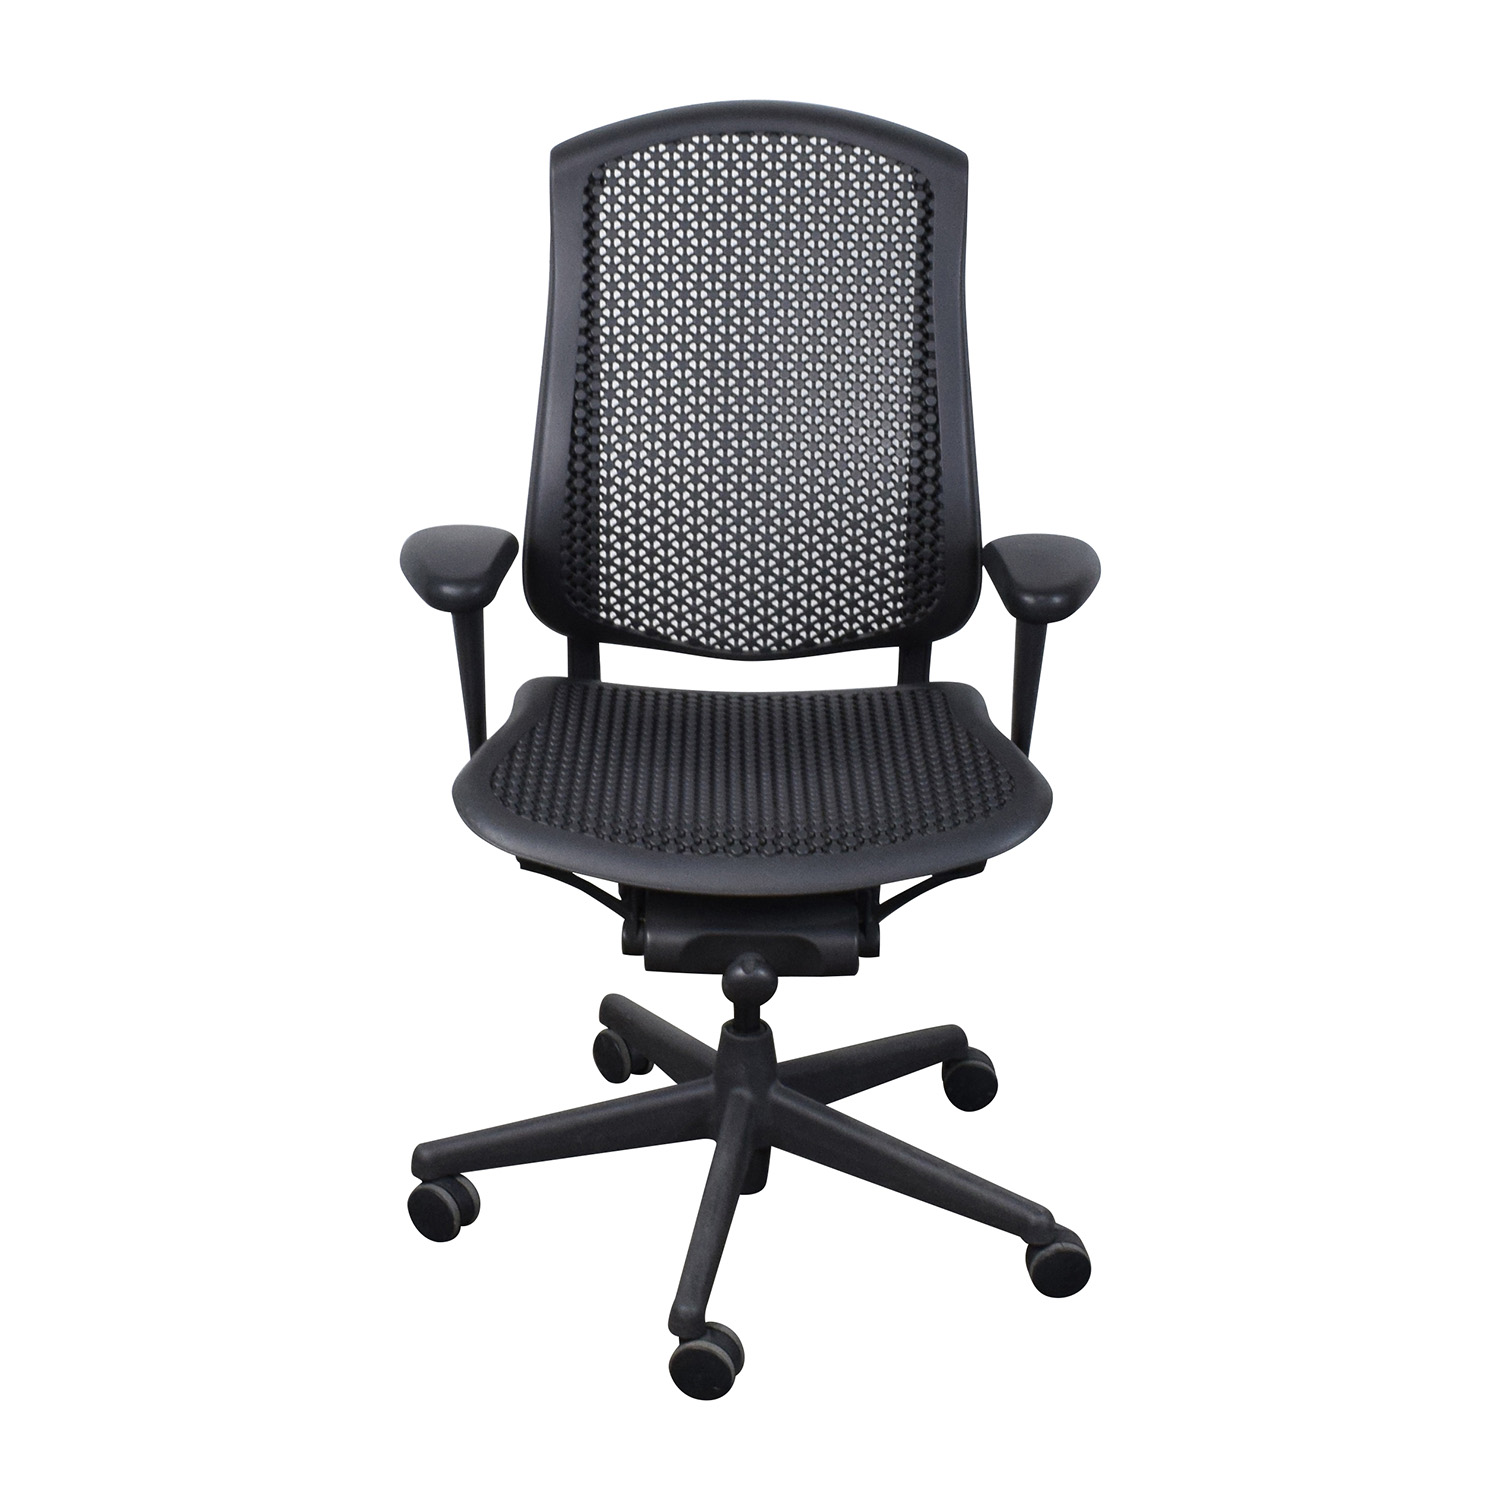 Herman Miller Herman Miller Areo Office Chair Home Office Chairs